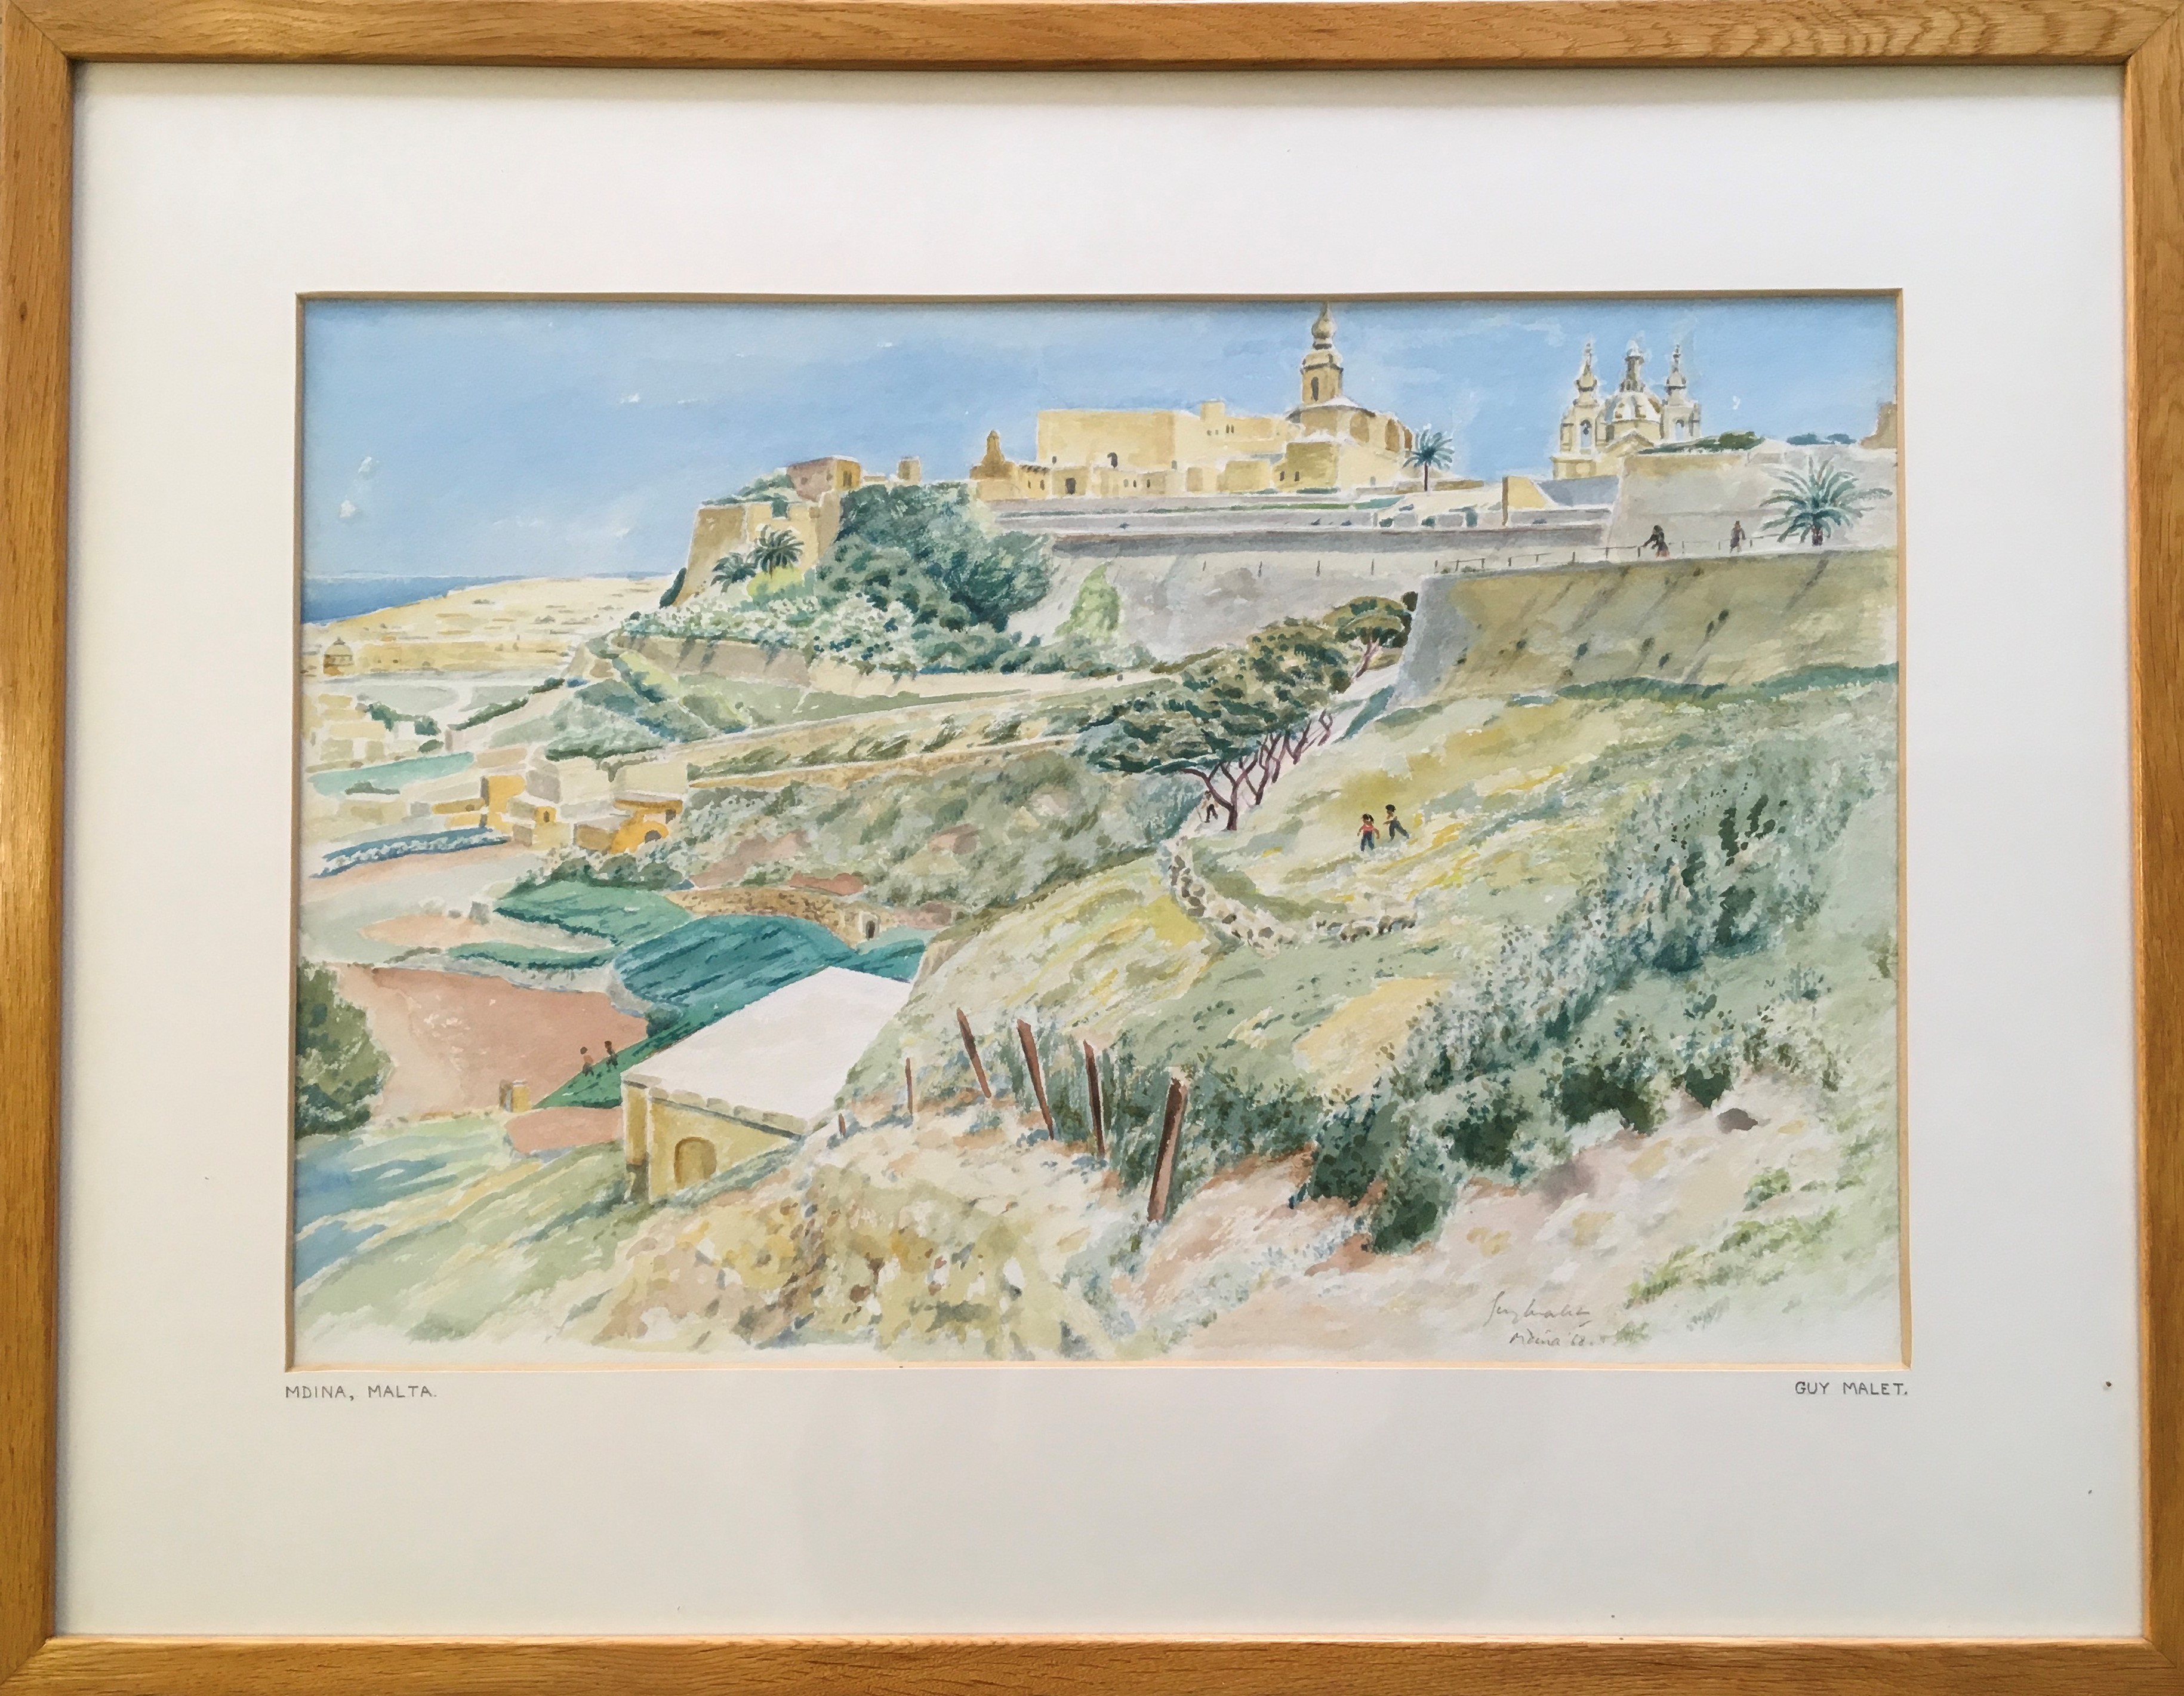 GUY MALET. Framed, signed in pencil, dated 1968 and titled 'Mdina, Malta', watercolour on paper, - Image 2 of 2